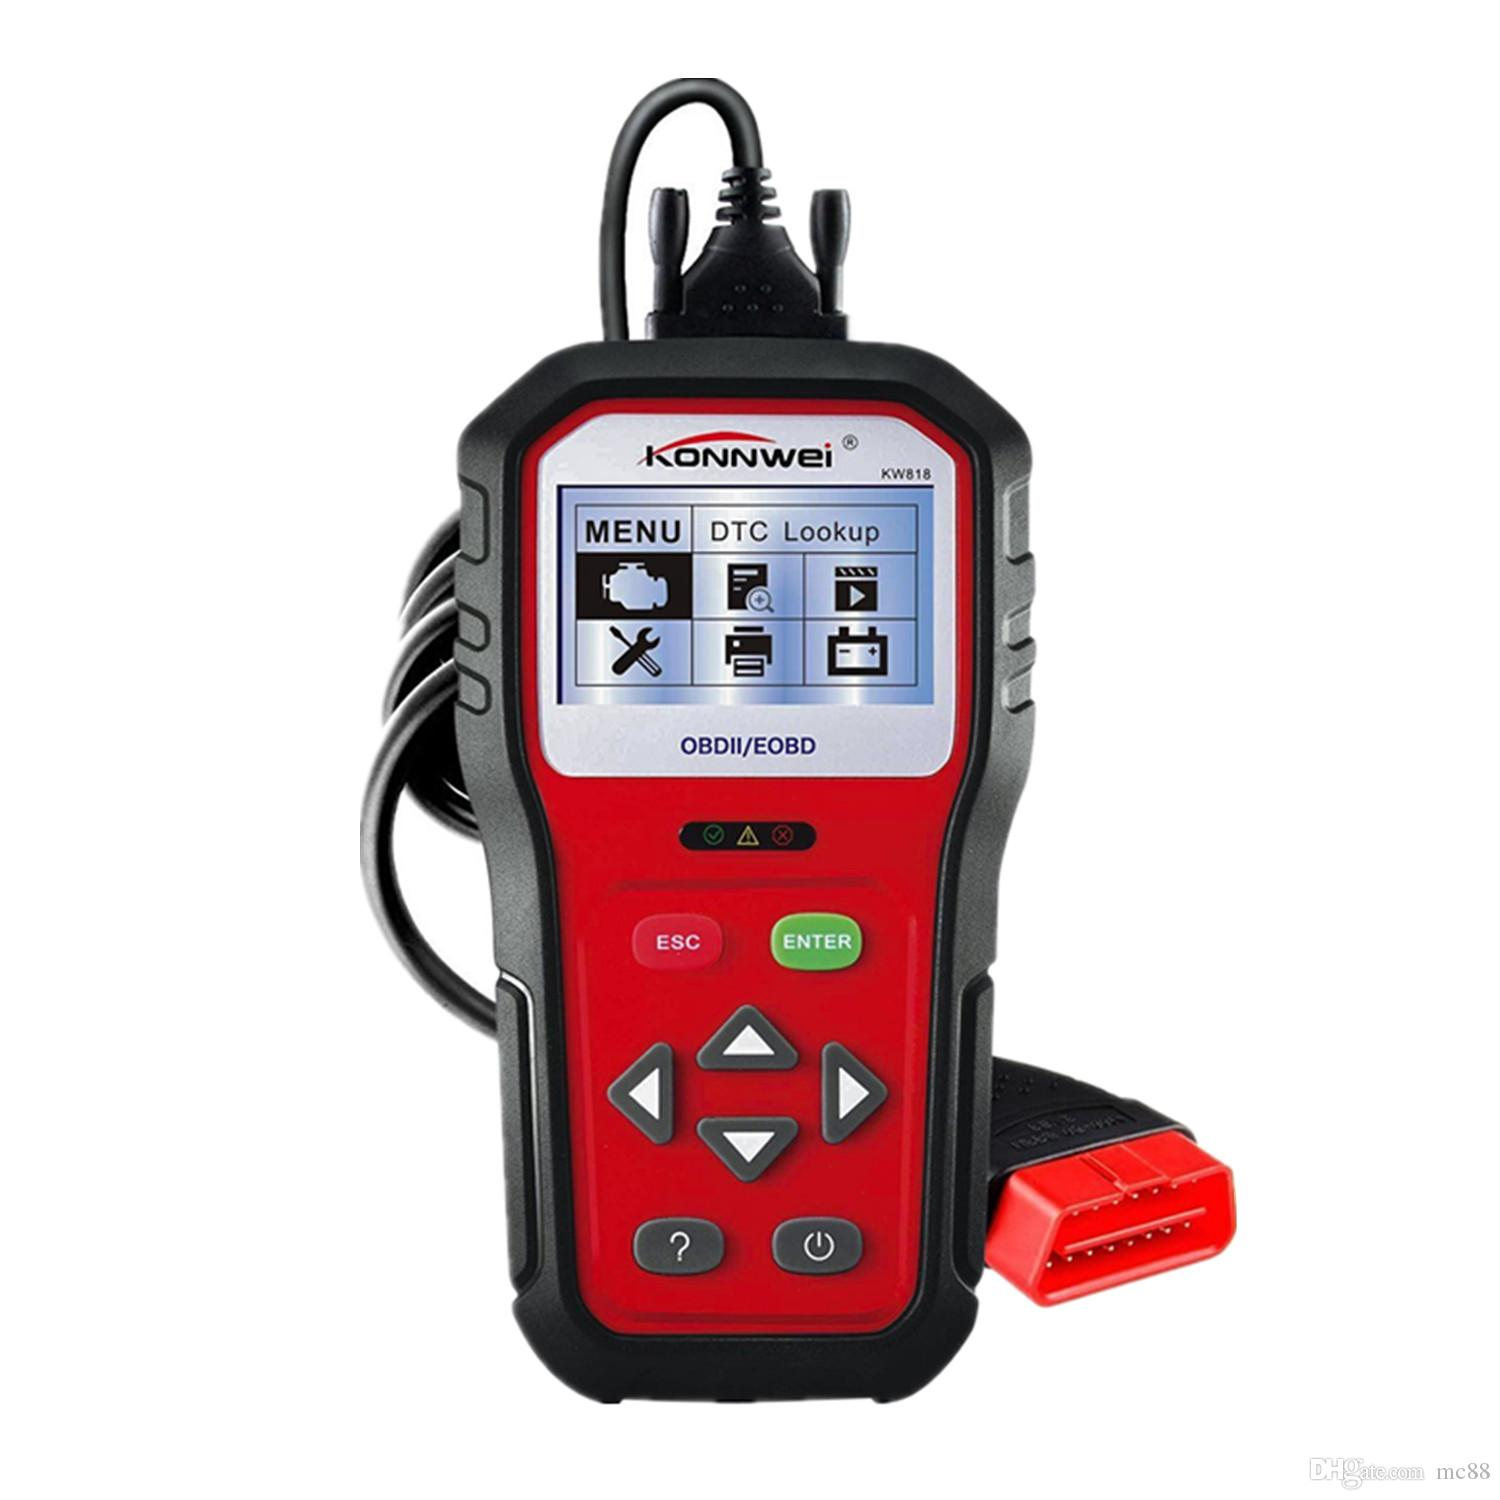 KW818 Enhanced OBD II Scan Tool Check Engine Reader Automotive Car Code Reader, Color Screen Full OBD2/ EOBD Function with O2 Sensor Test